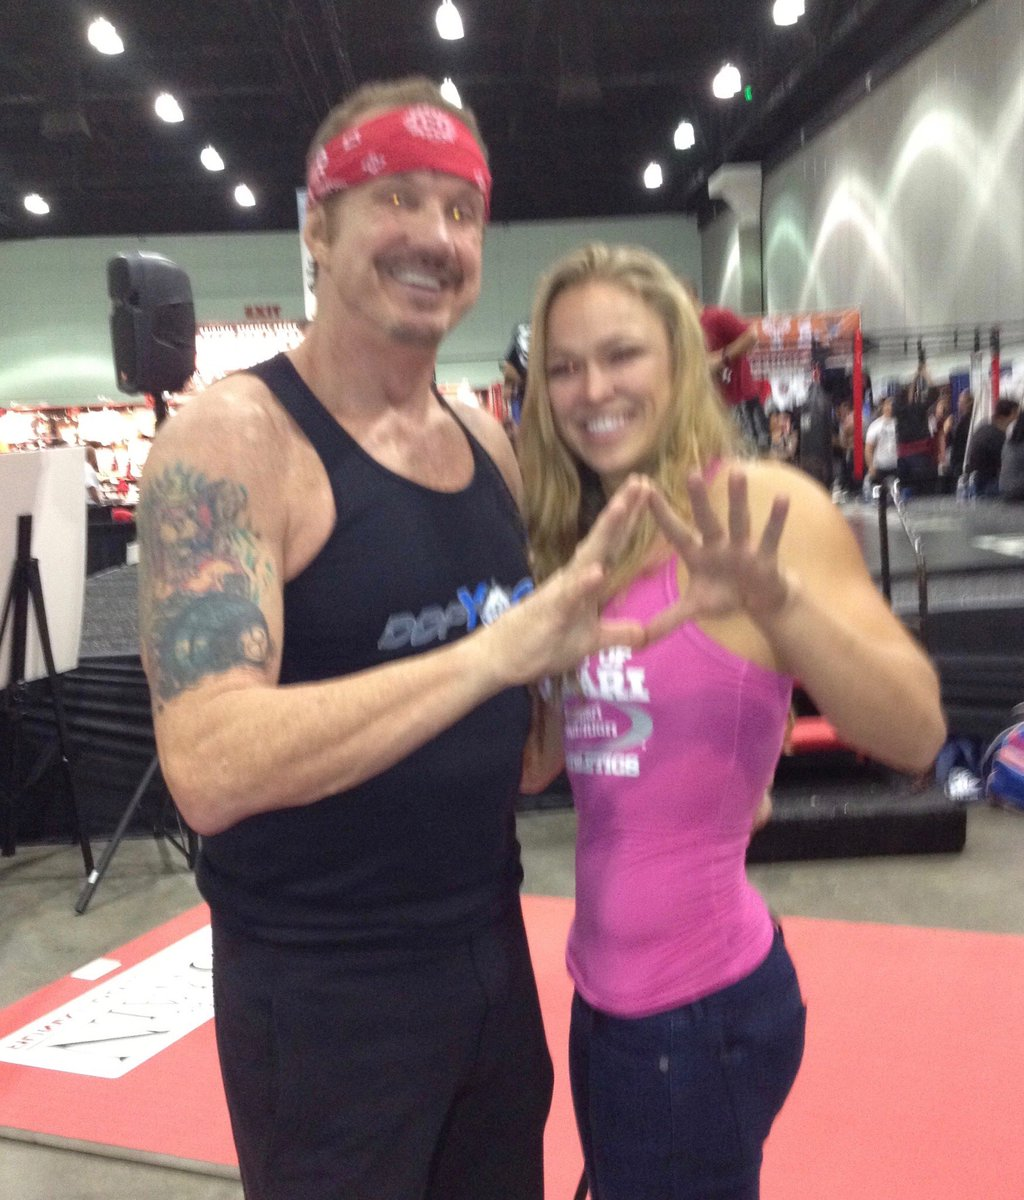 I've been telling @TMZ 4 months @RondaRousey was going to #OwnIT tonight at @WrestleMania I told you ALL she was a shinning Star⭐️ Great match fellow #WWEHOF @KurtAngleGGE @TripleH @StephMcMahon the PEOPLE were Going Crazy💥 This match gets 5/5 💎💎💎💎💎 @DDPYoga @RealDDP DDP